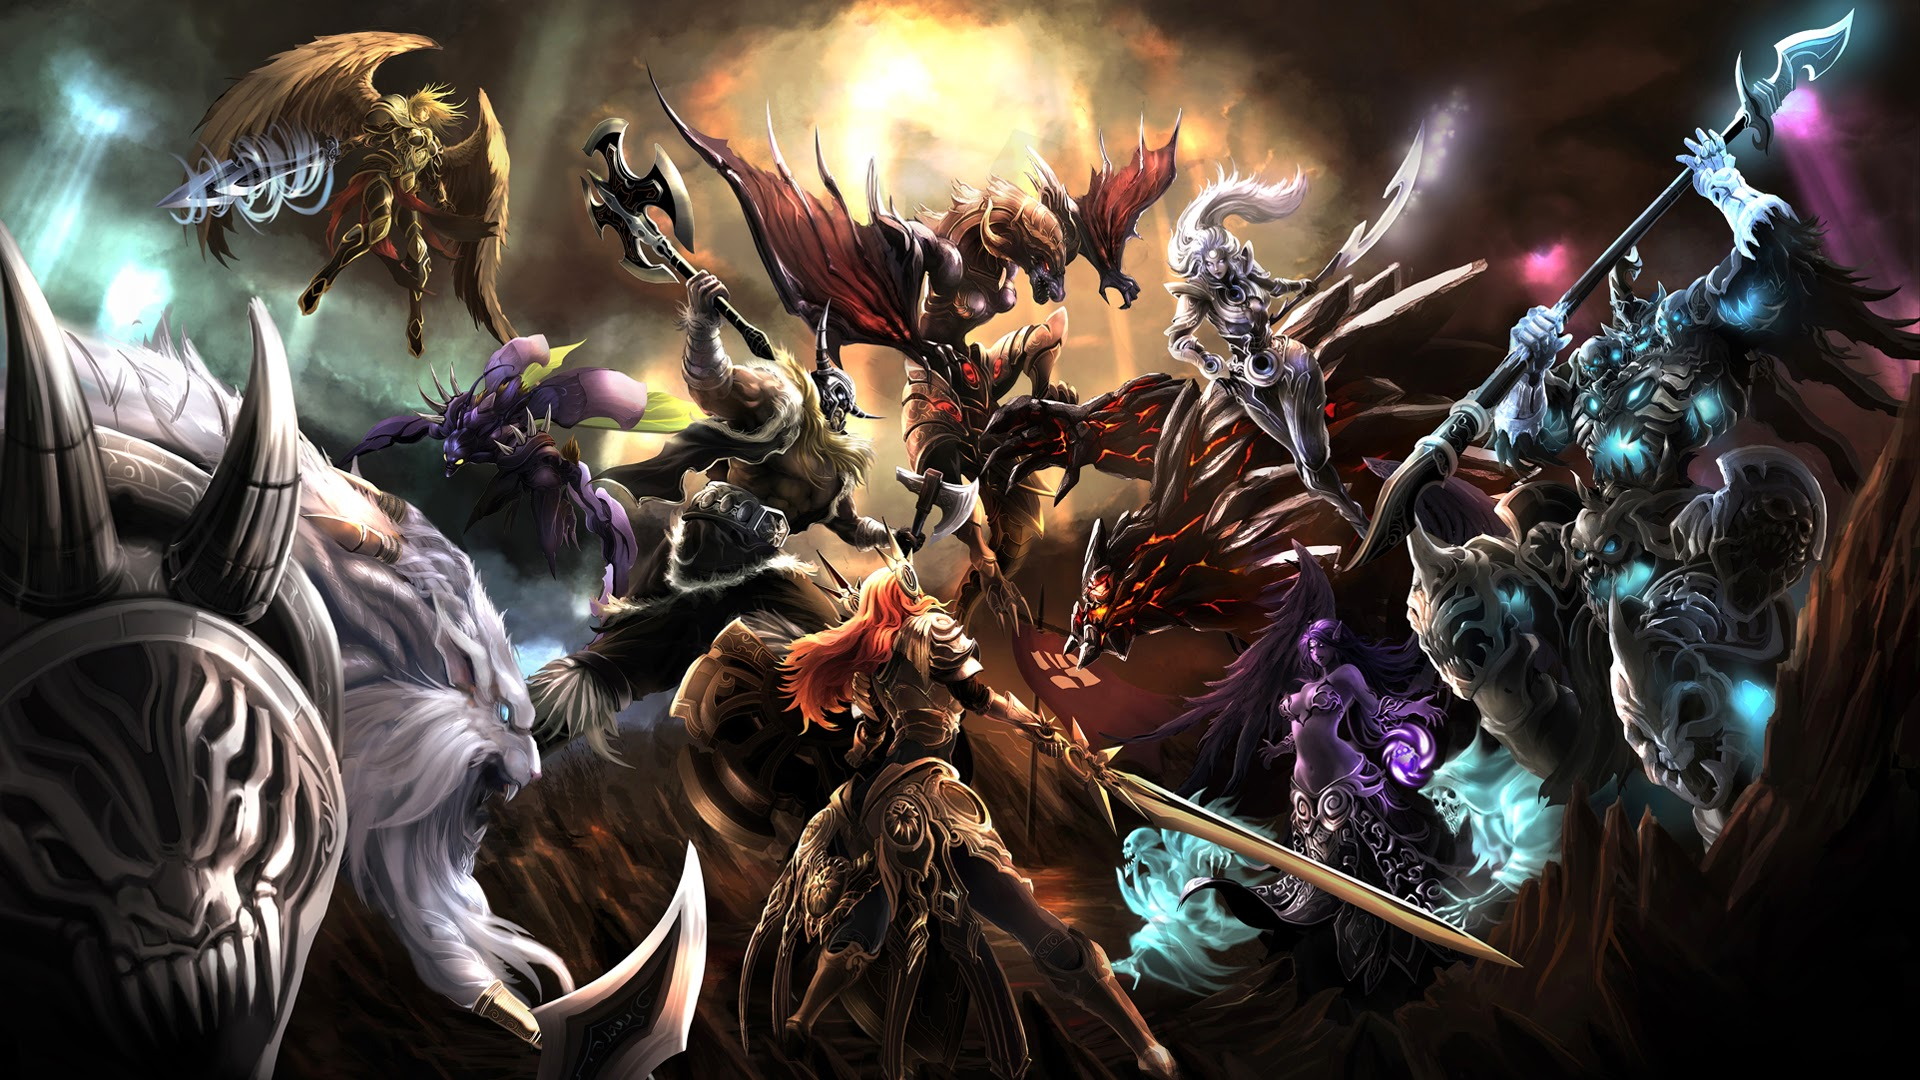 league of legends epic clash battle hd wallpaper background 1920x1080